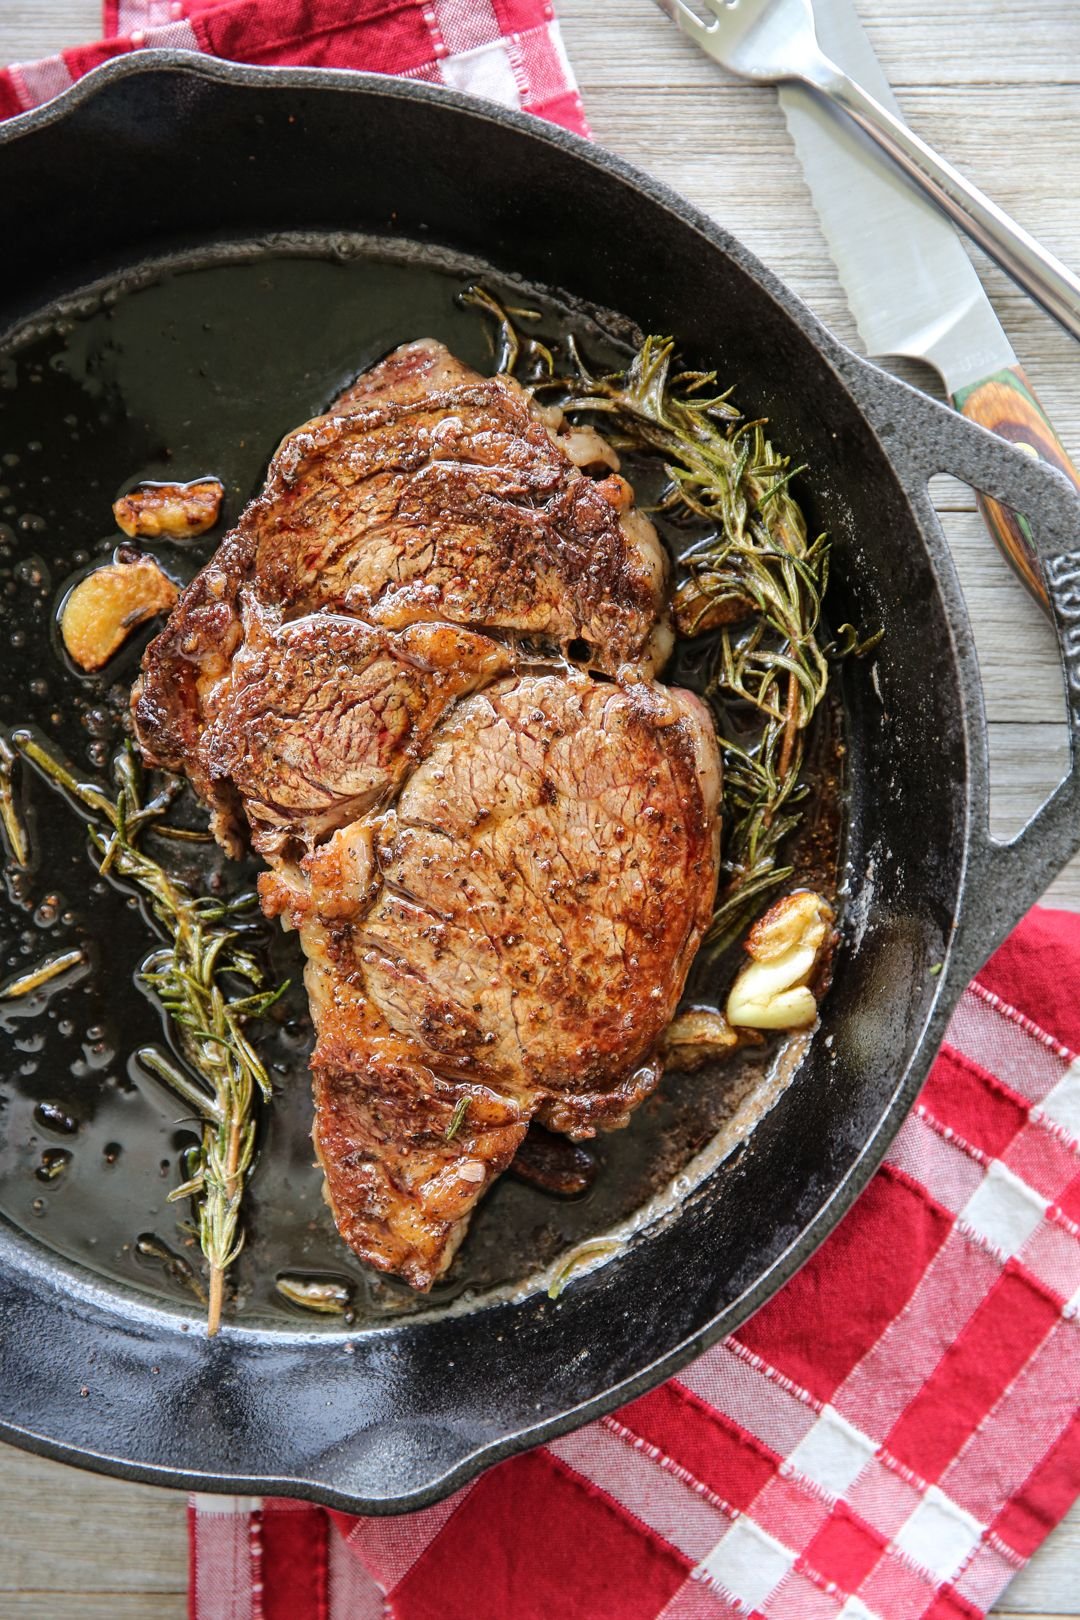 How To Cook The Perfect Steak Recipe Cooking The Perfect Steak Steak Dinner Main Dish Recipes